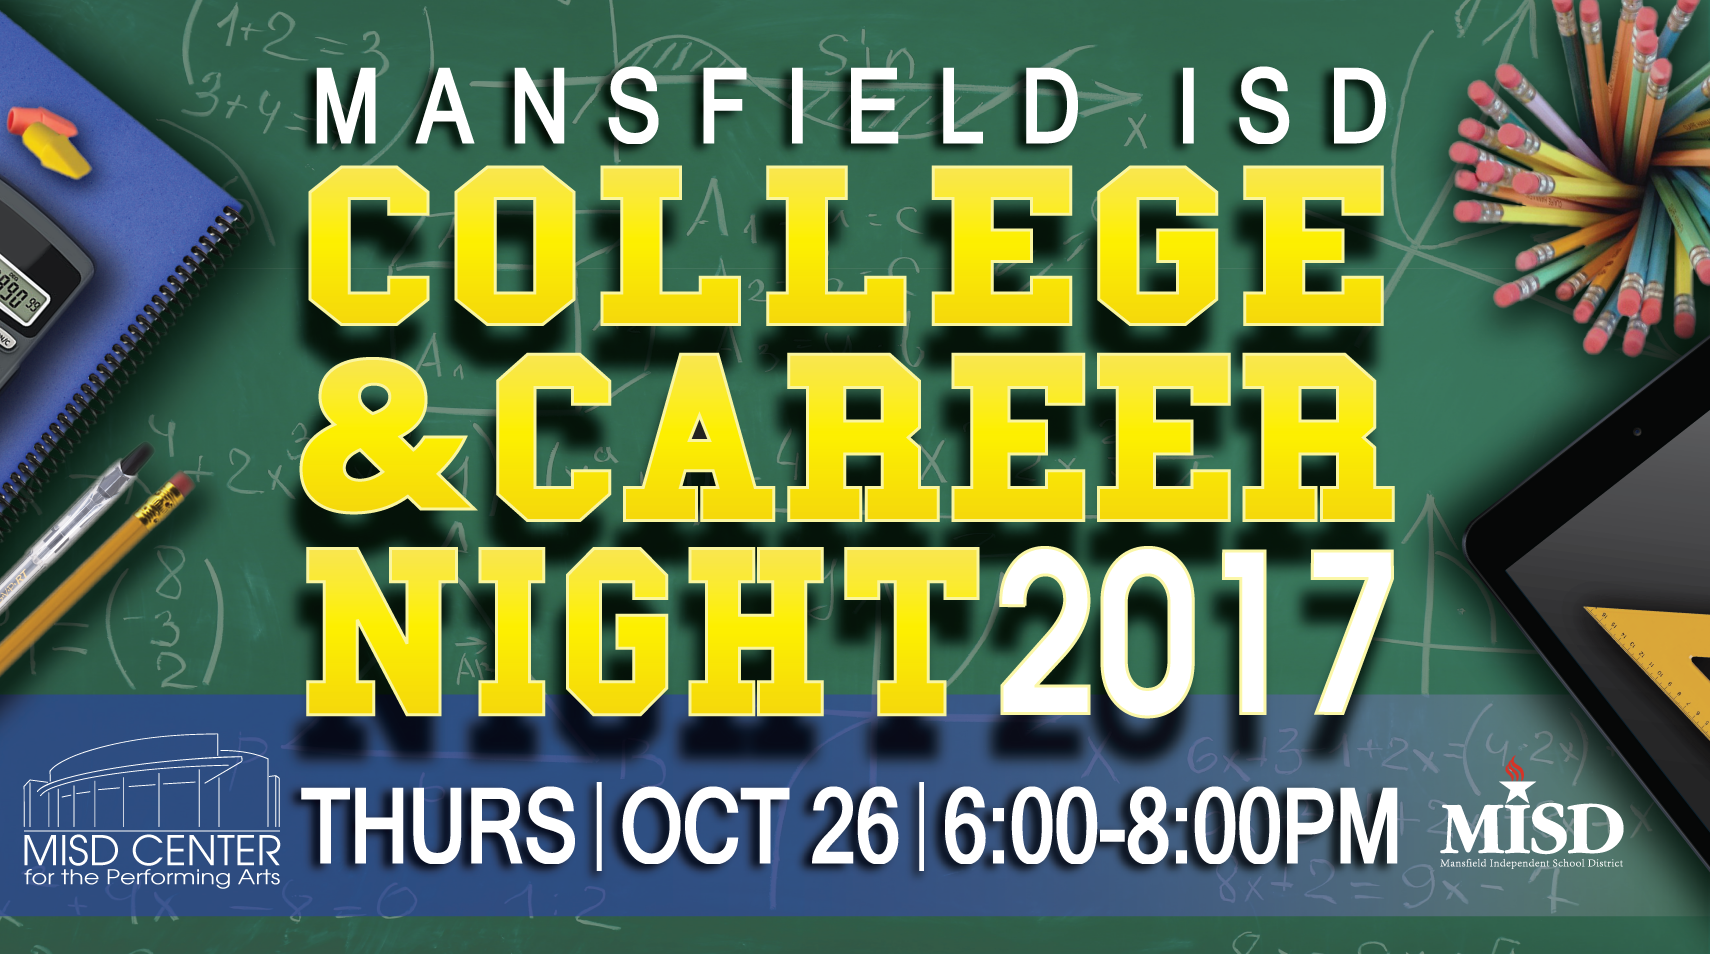 MISD College and Career Night